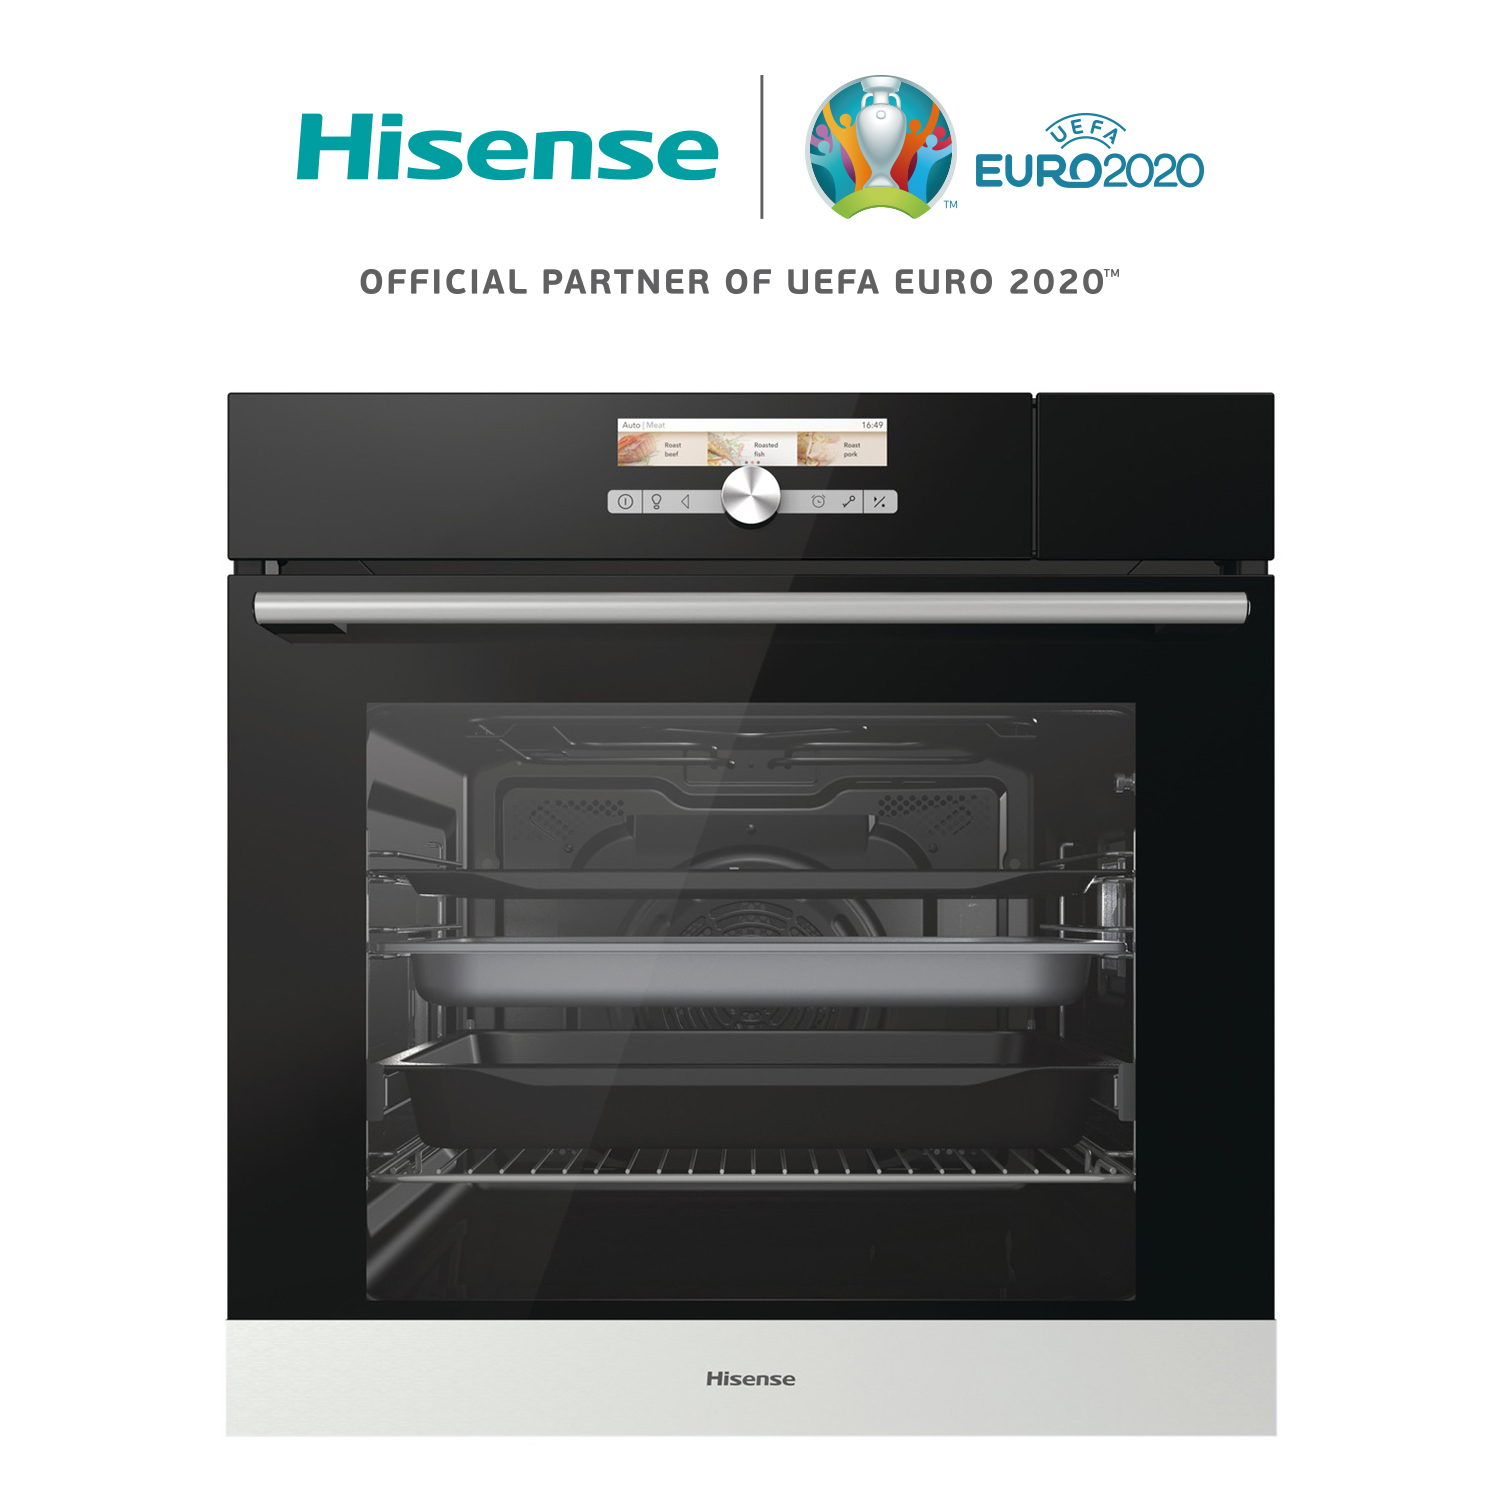 Hisense BS5545AG Oven, Combi, Recessed, 3400W, 73 L Class TO +, Three Trays, Closure SoftClose, Dehydration, SlowBake